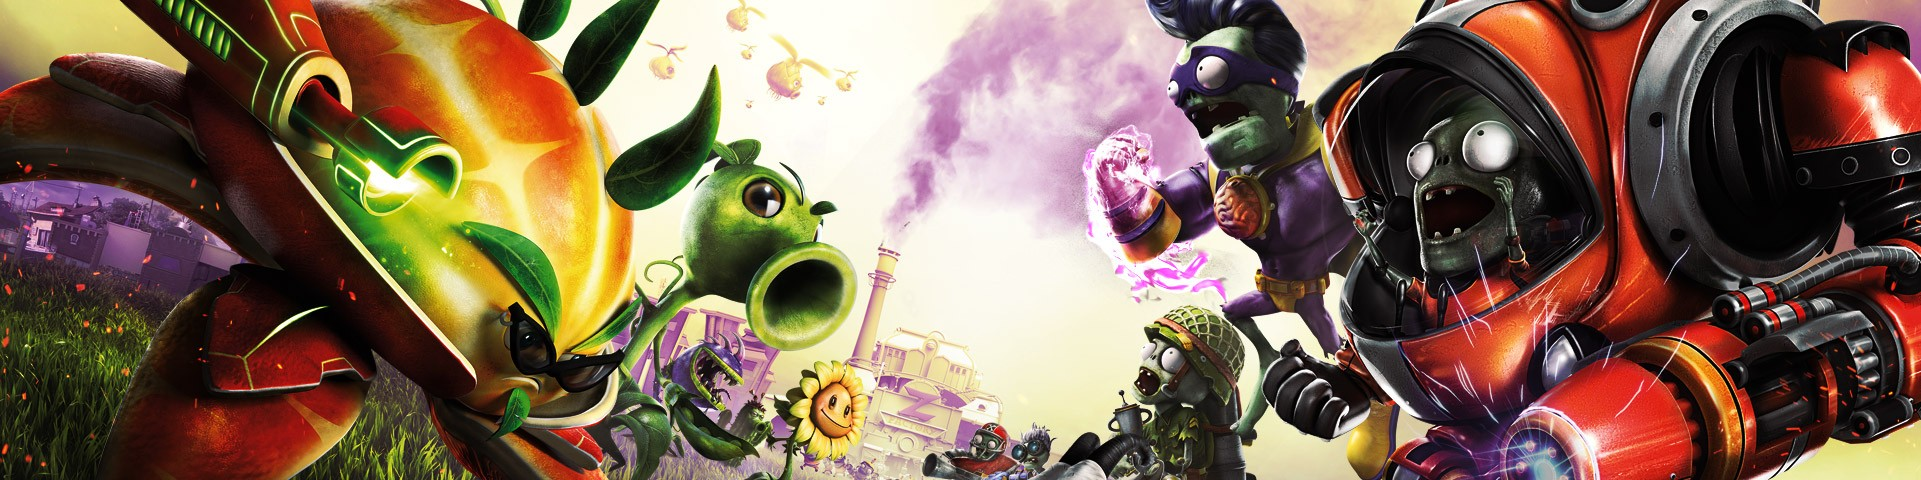 Plants vs  Zombies™ Garden Warfare 2